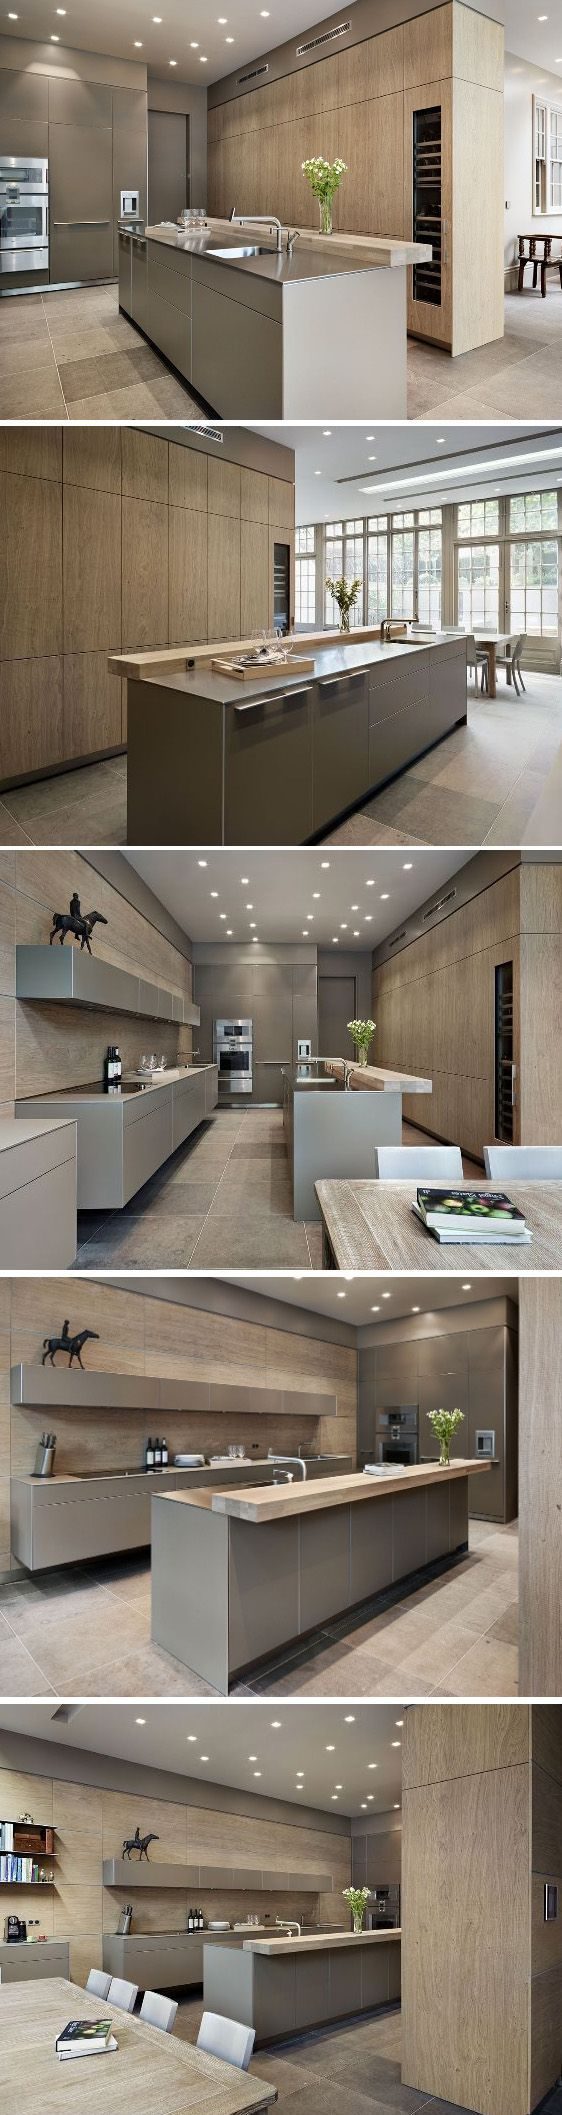 Grand Dining Bulthaup by Kitchen Architecture 322